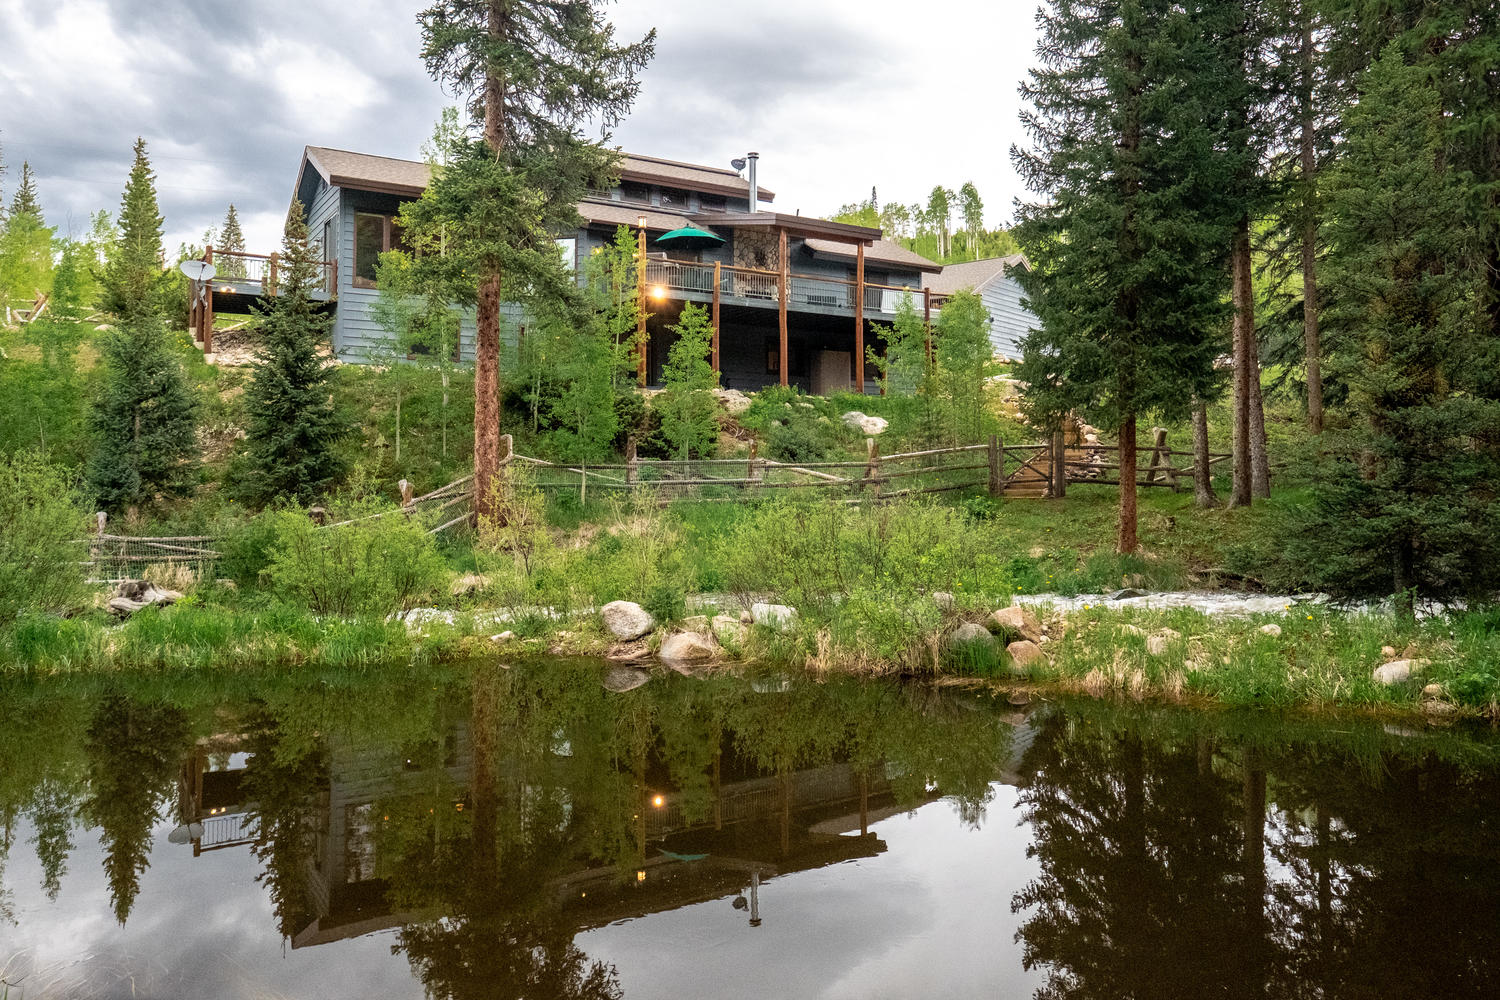 3444 County Road 8 Fraser, Colorado 80442 - Listed by Melinda V Lee of LIV Sothebys - Devil's Thumb Ranch trail system